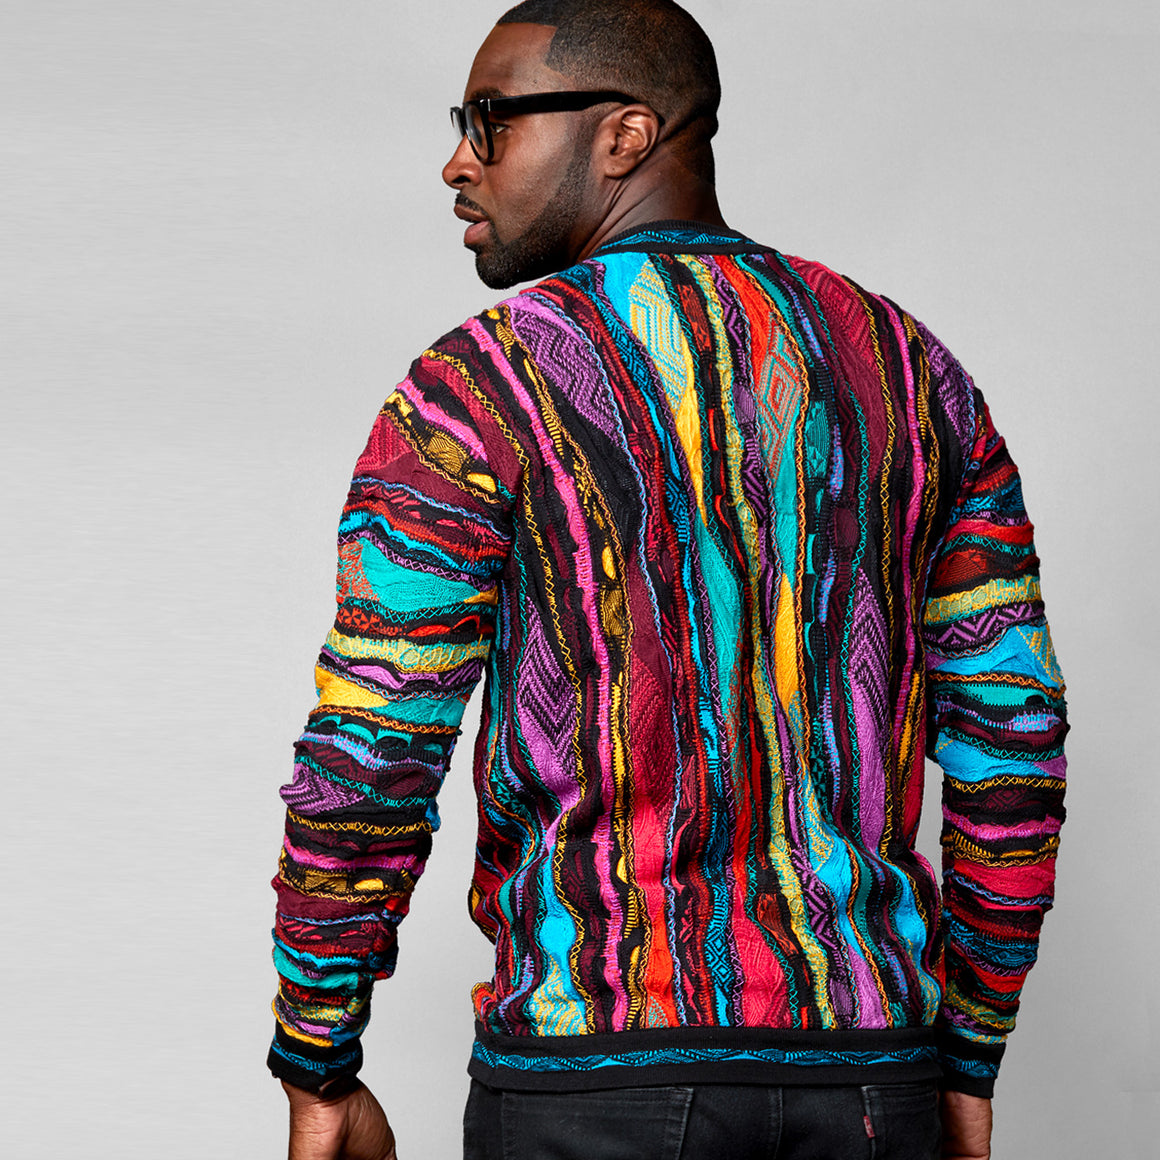 COOGI AUTUMN ONE, LIMITED EDITION